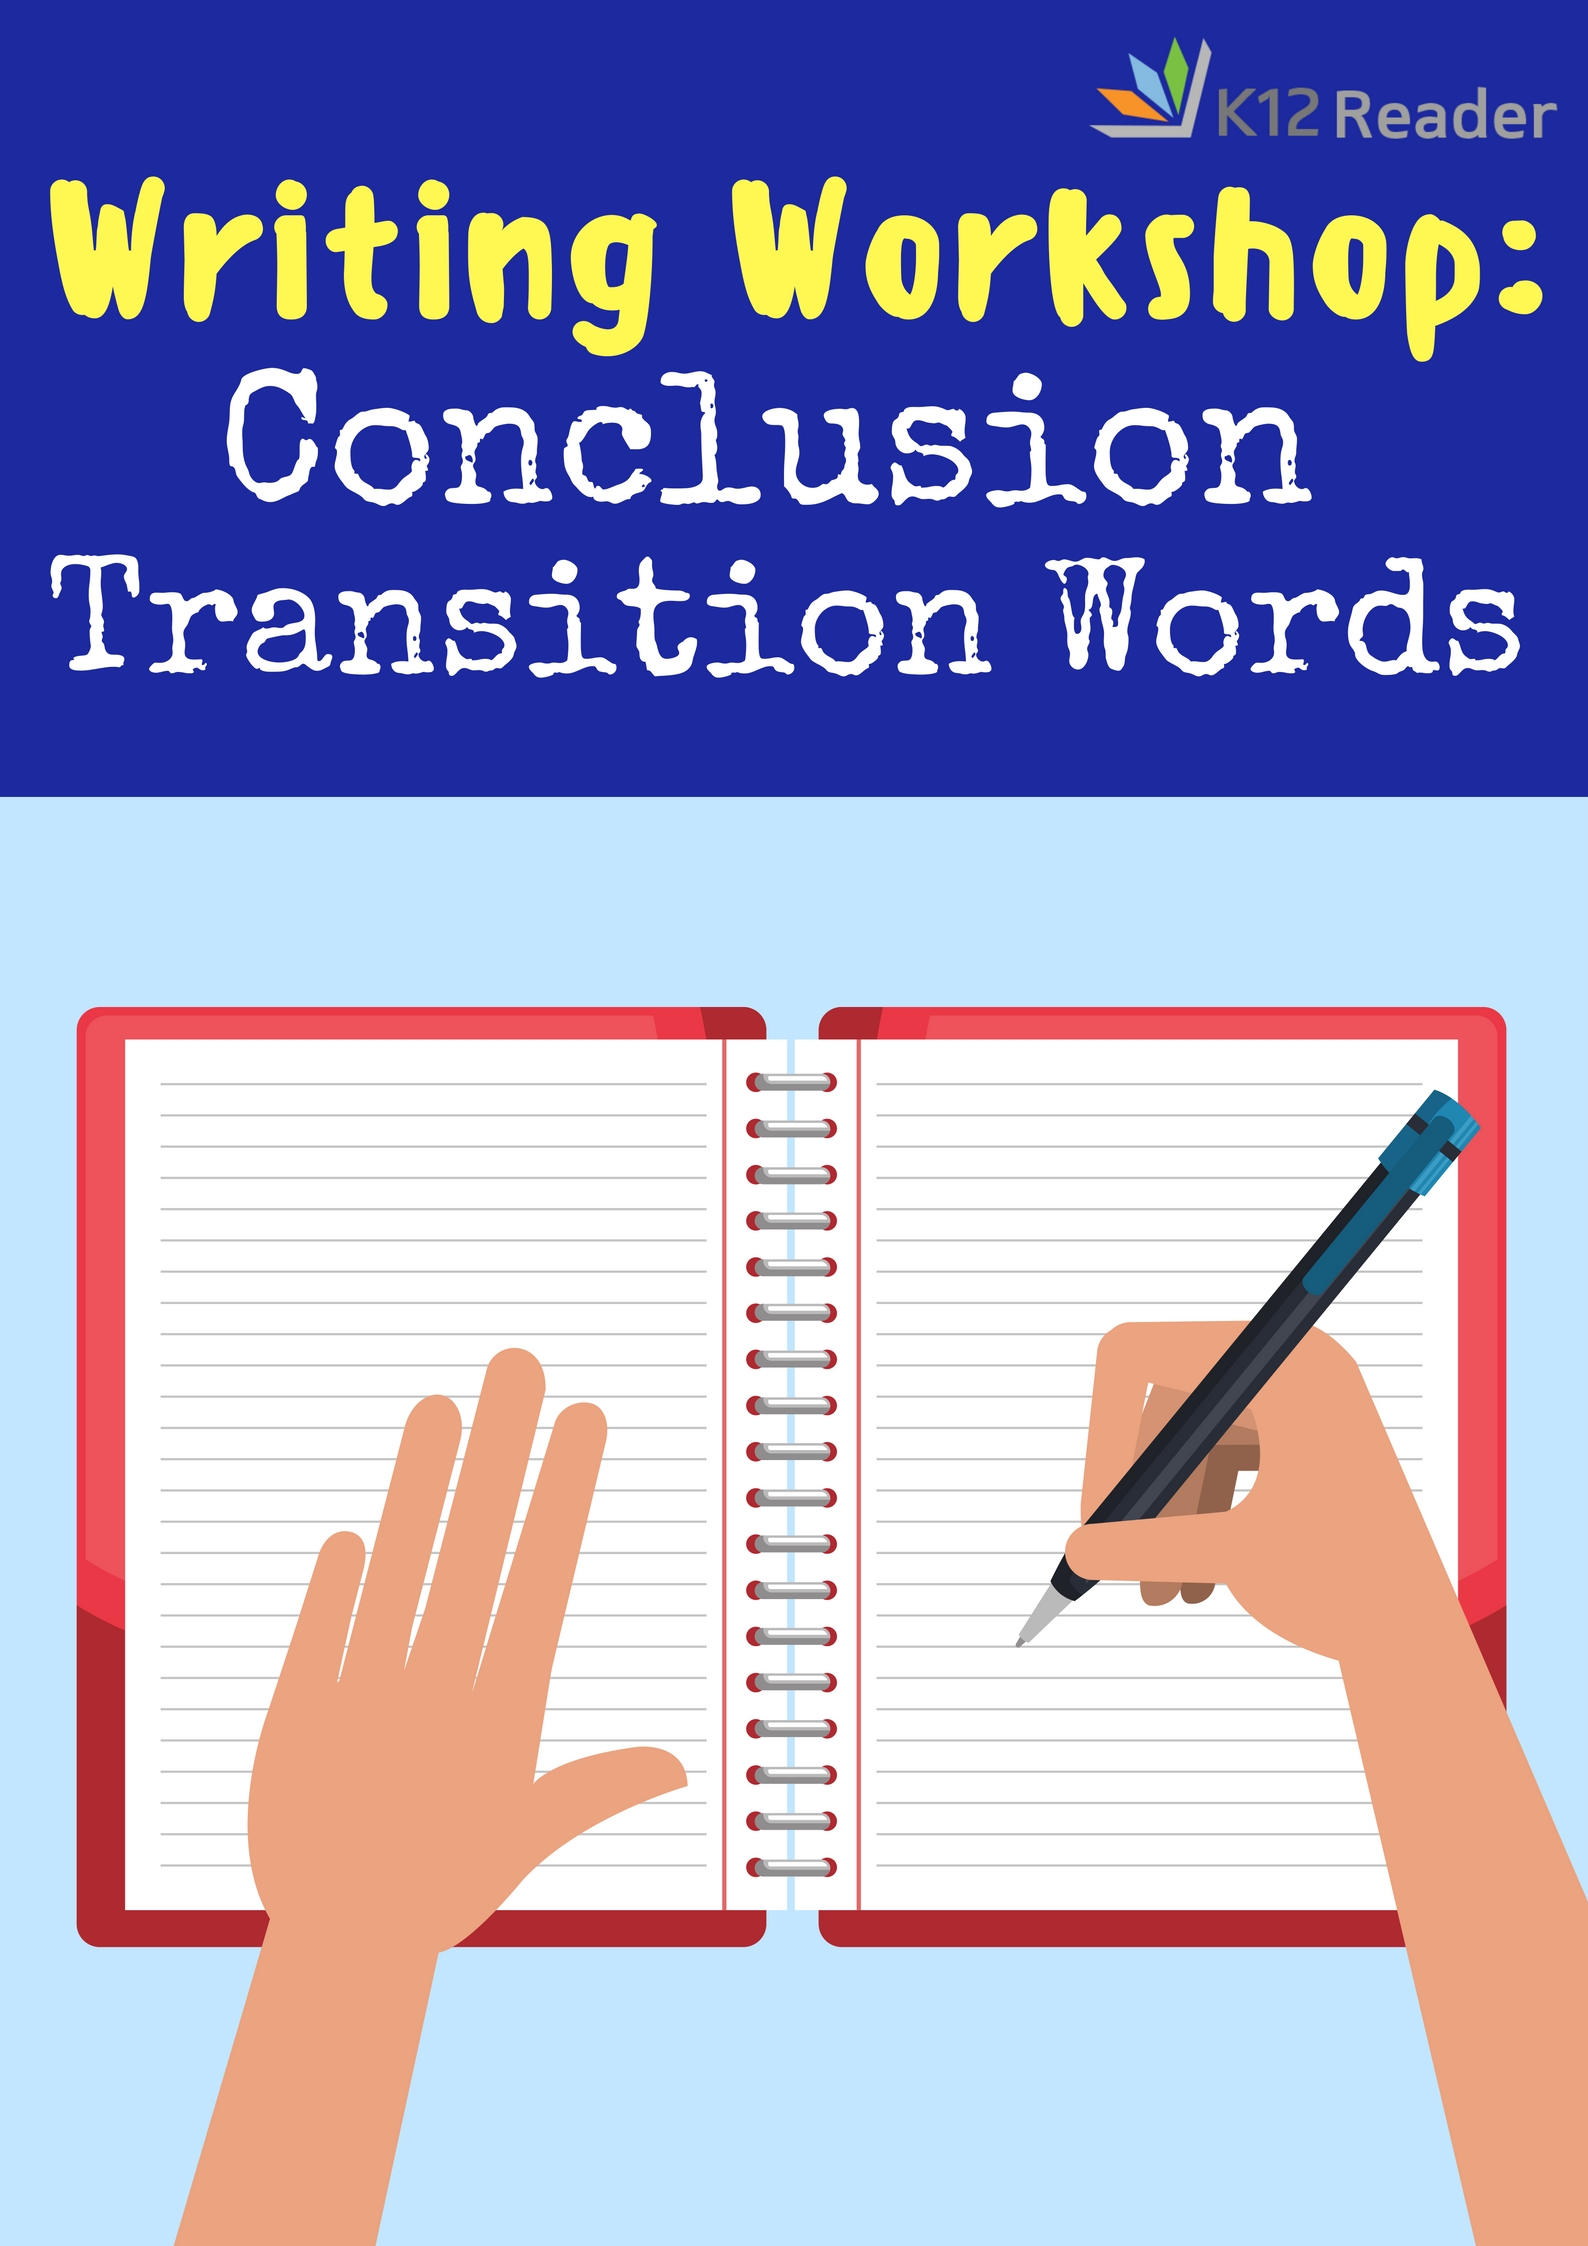 Conclusion Transition Words and Phrases - K12reader